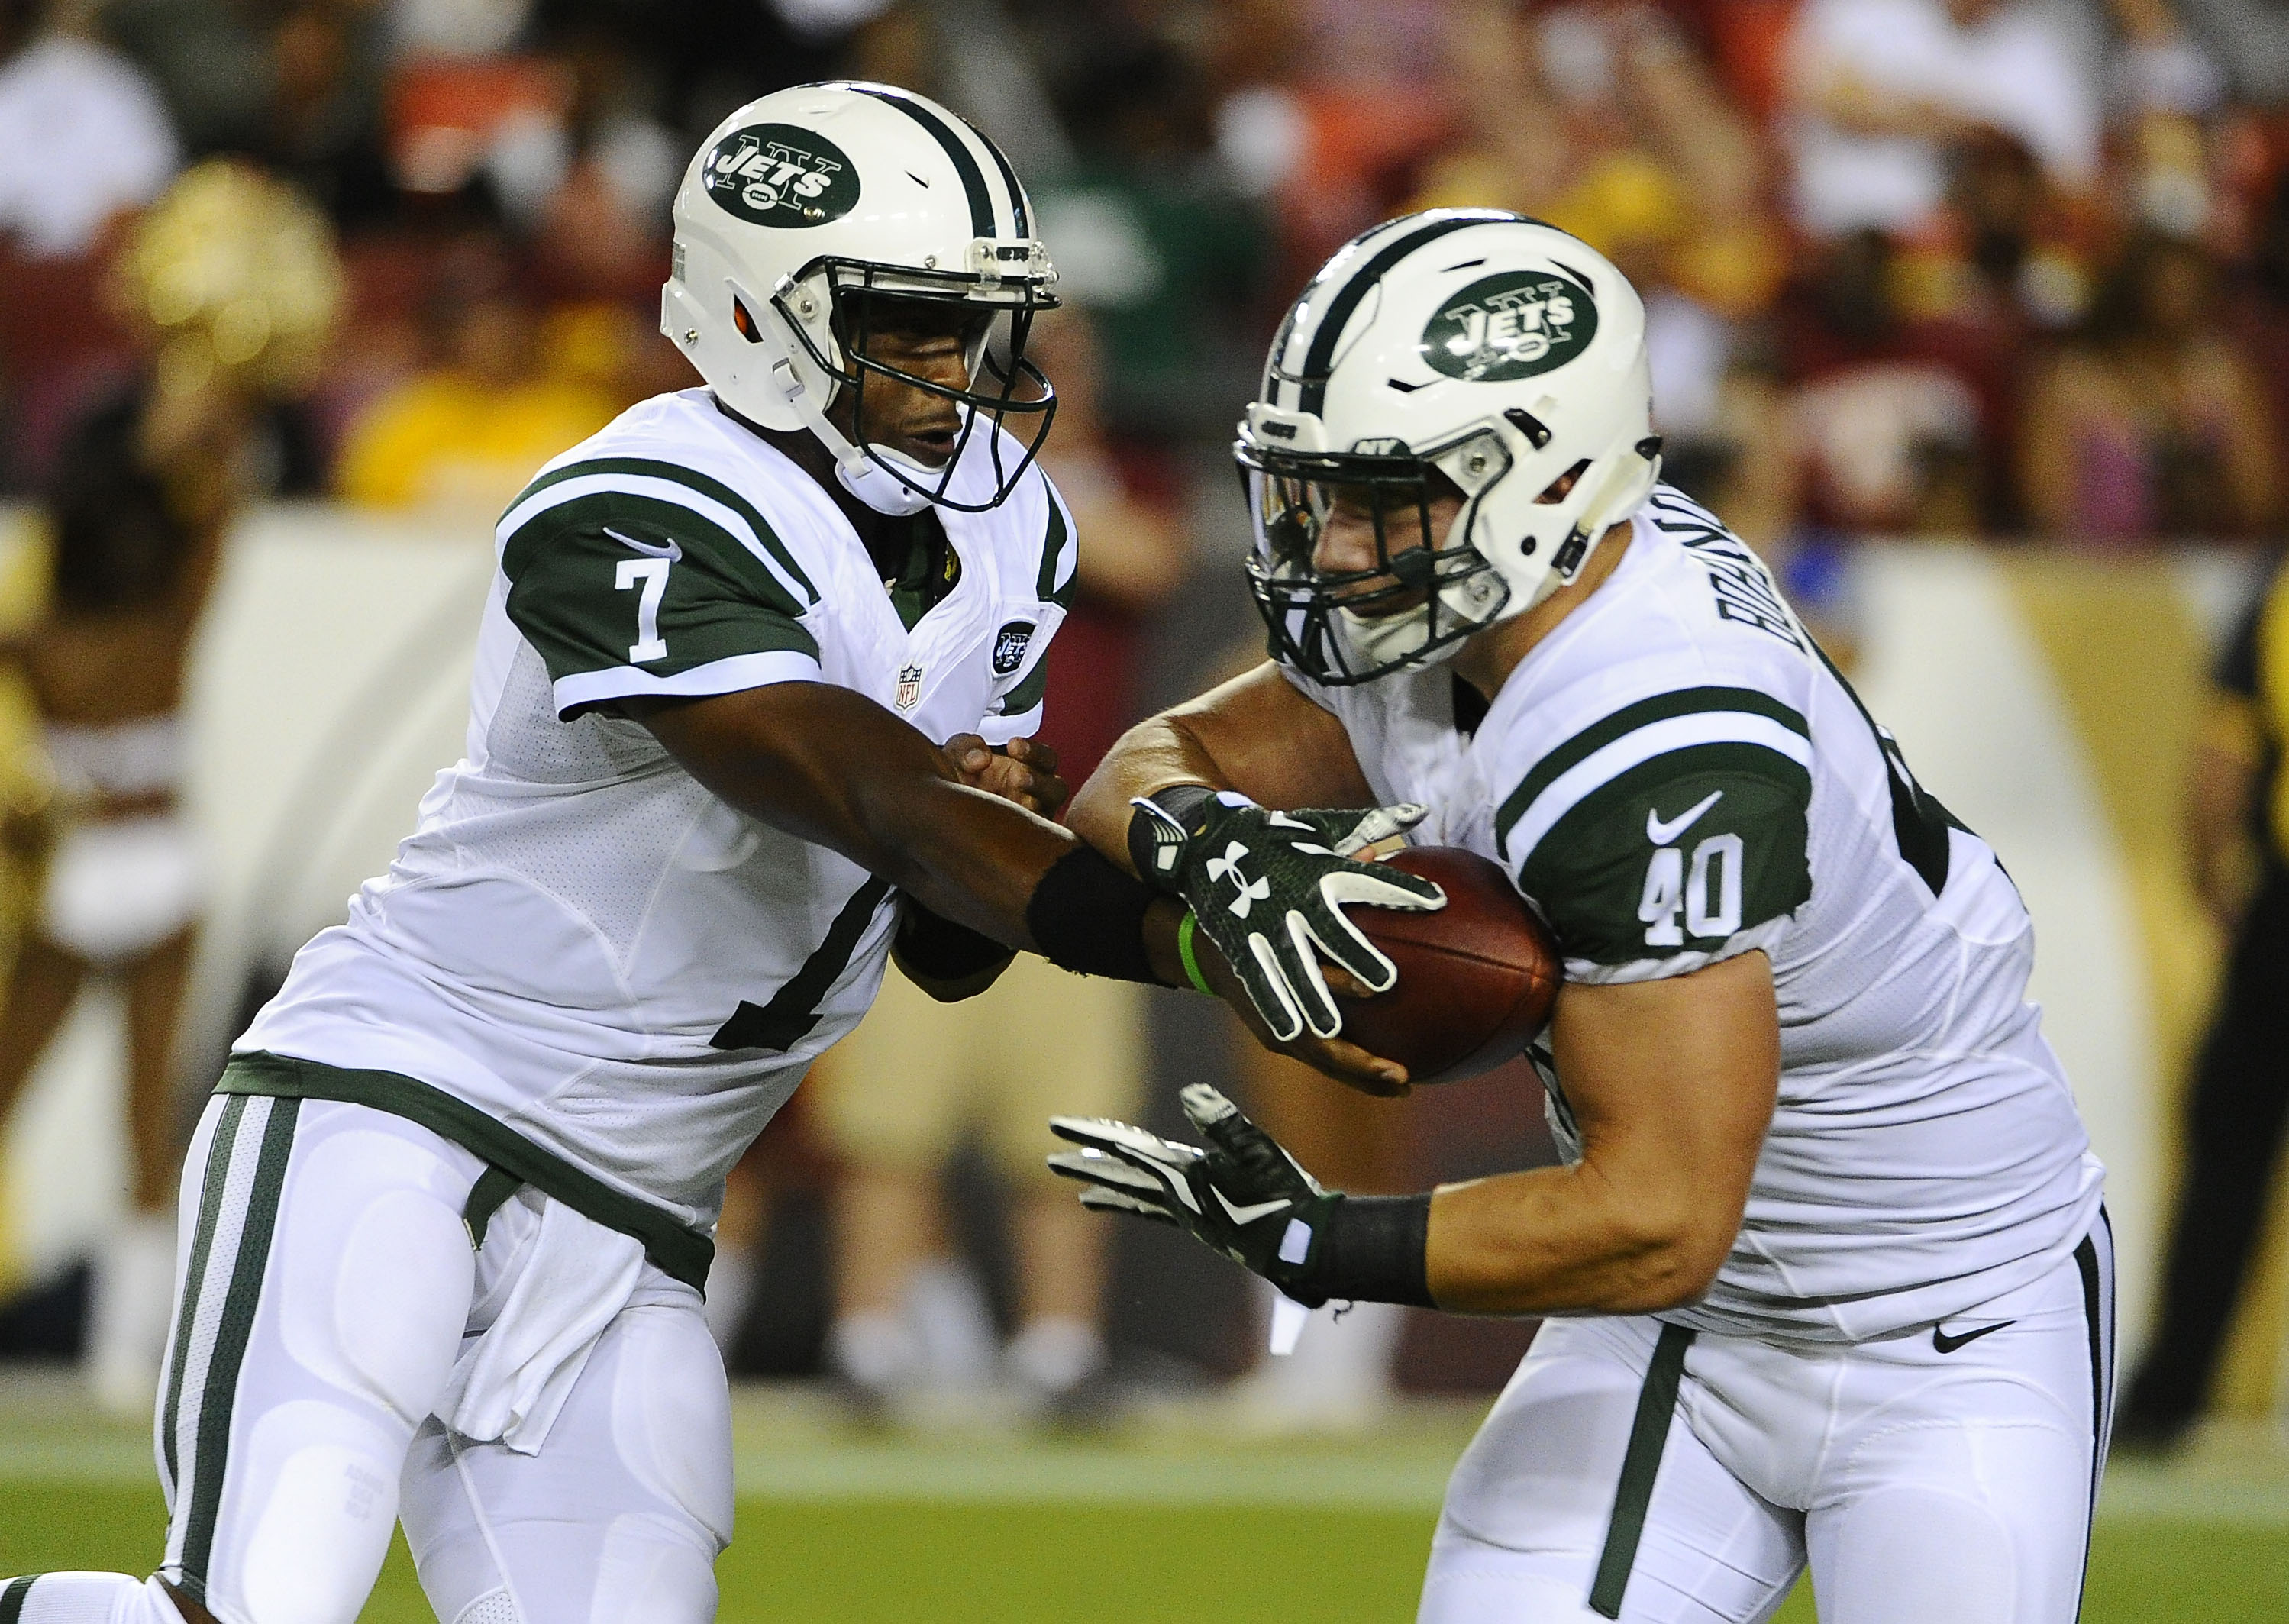 9488265-nfl-preseason-new-york-jets-at-washington-redskins